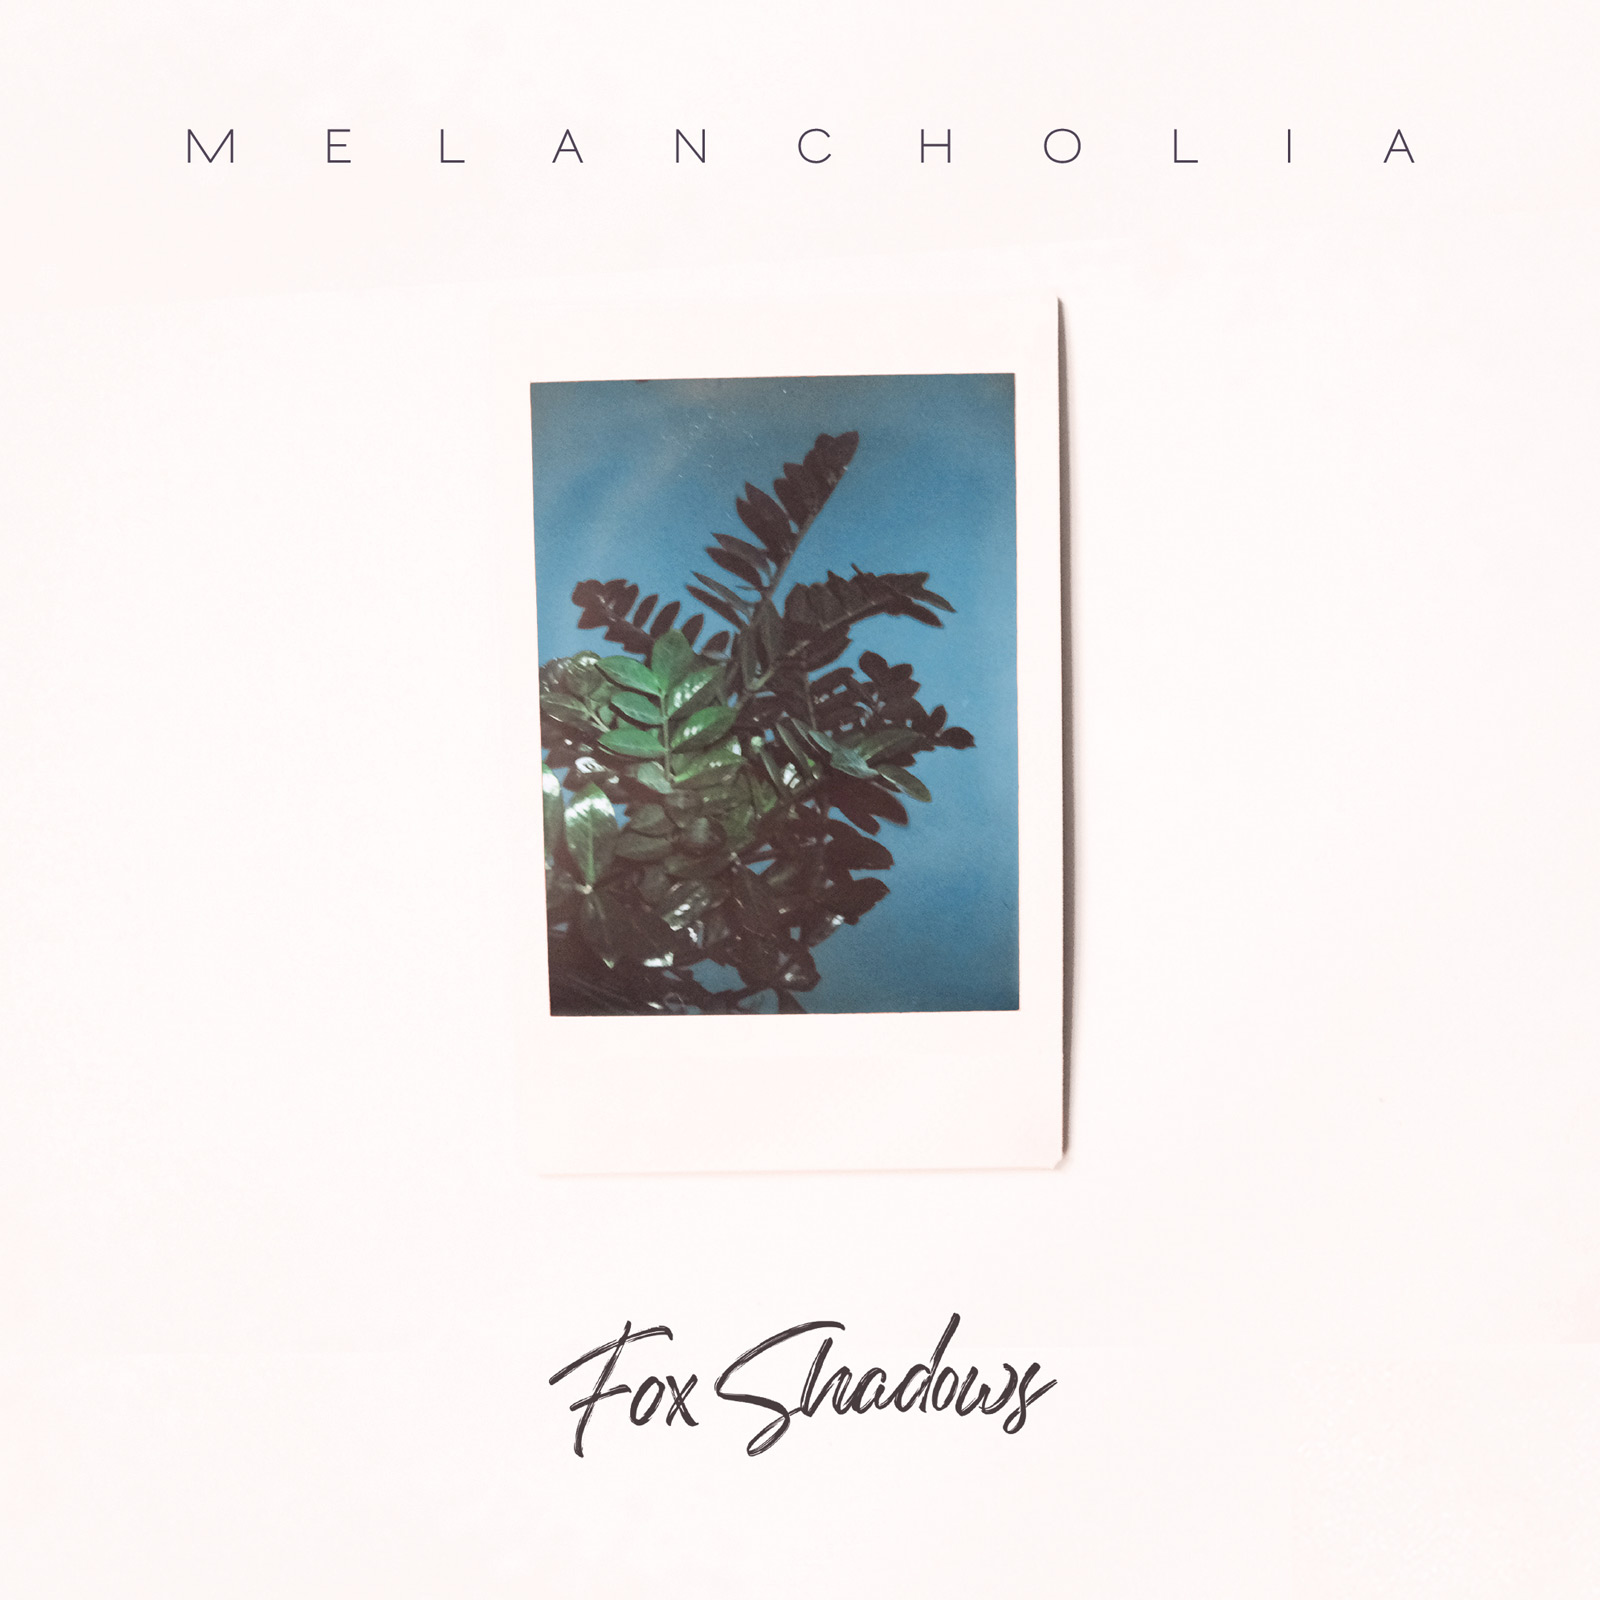 Fox Shadows - Melancholia on Vinyl out now!